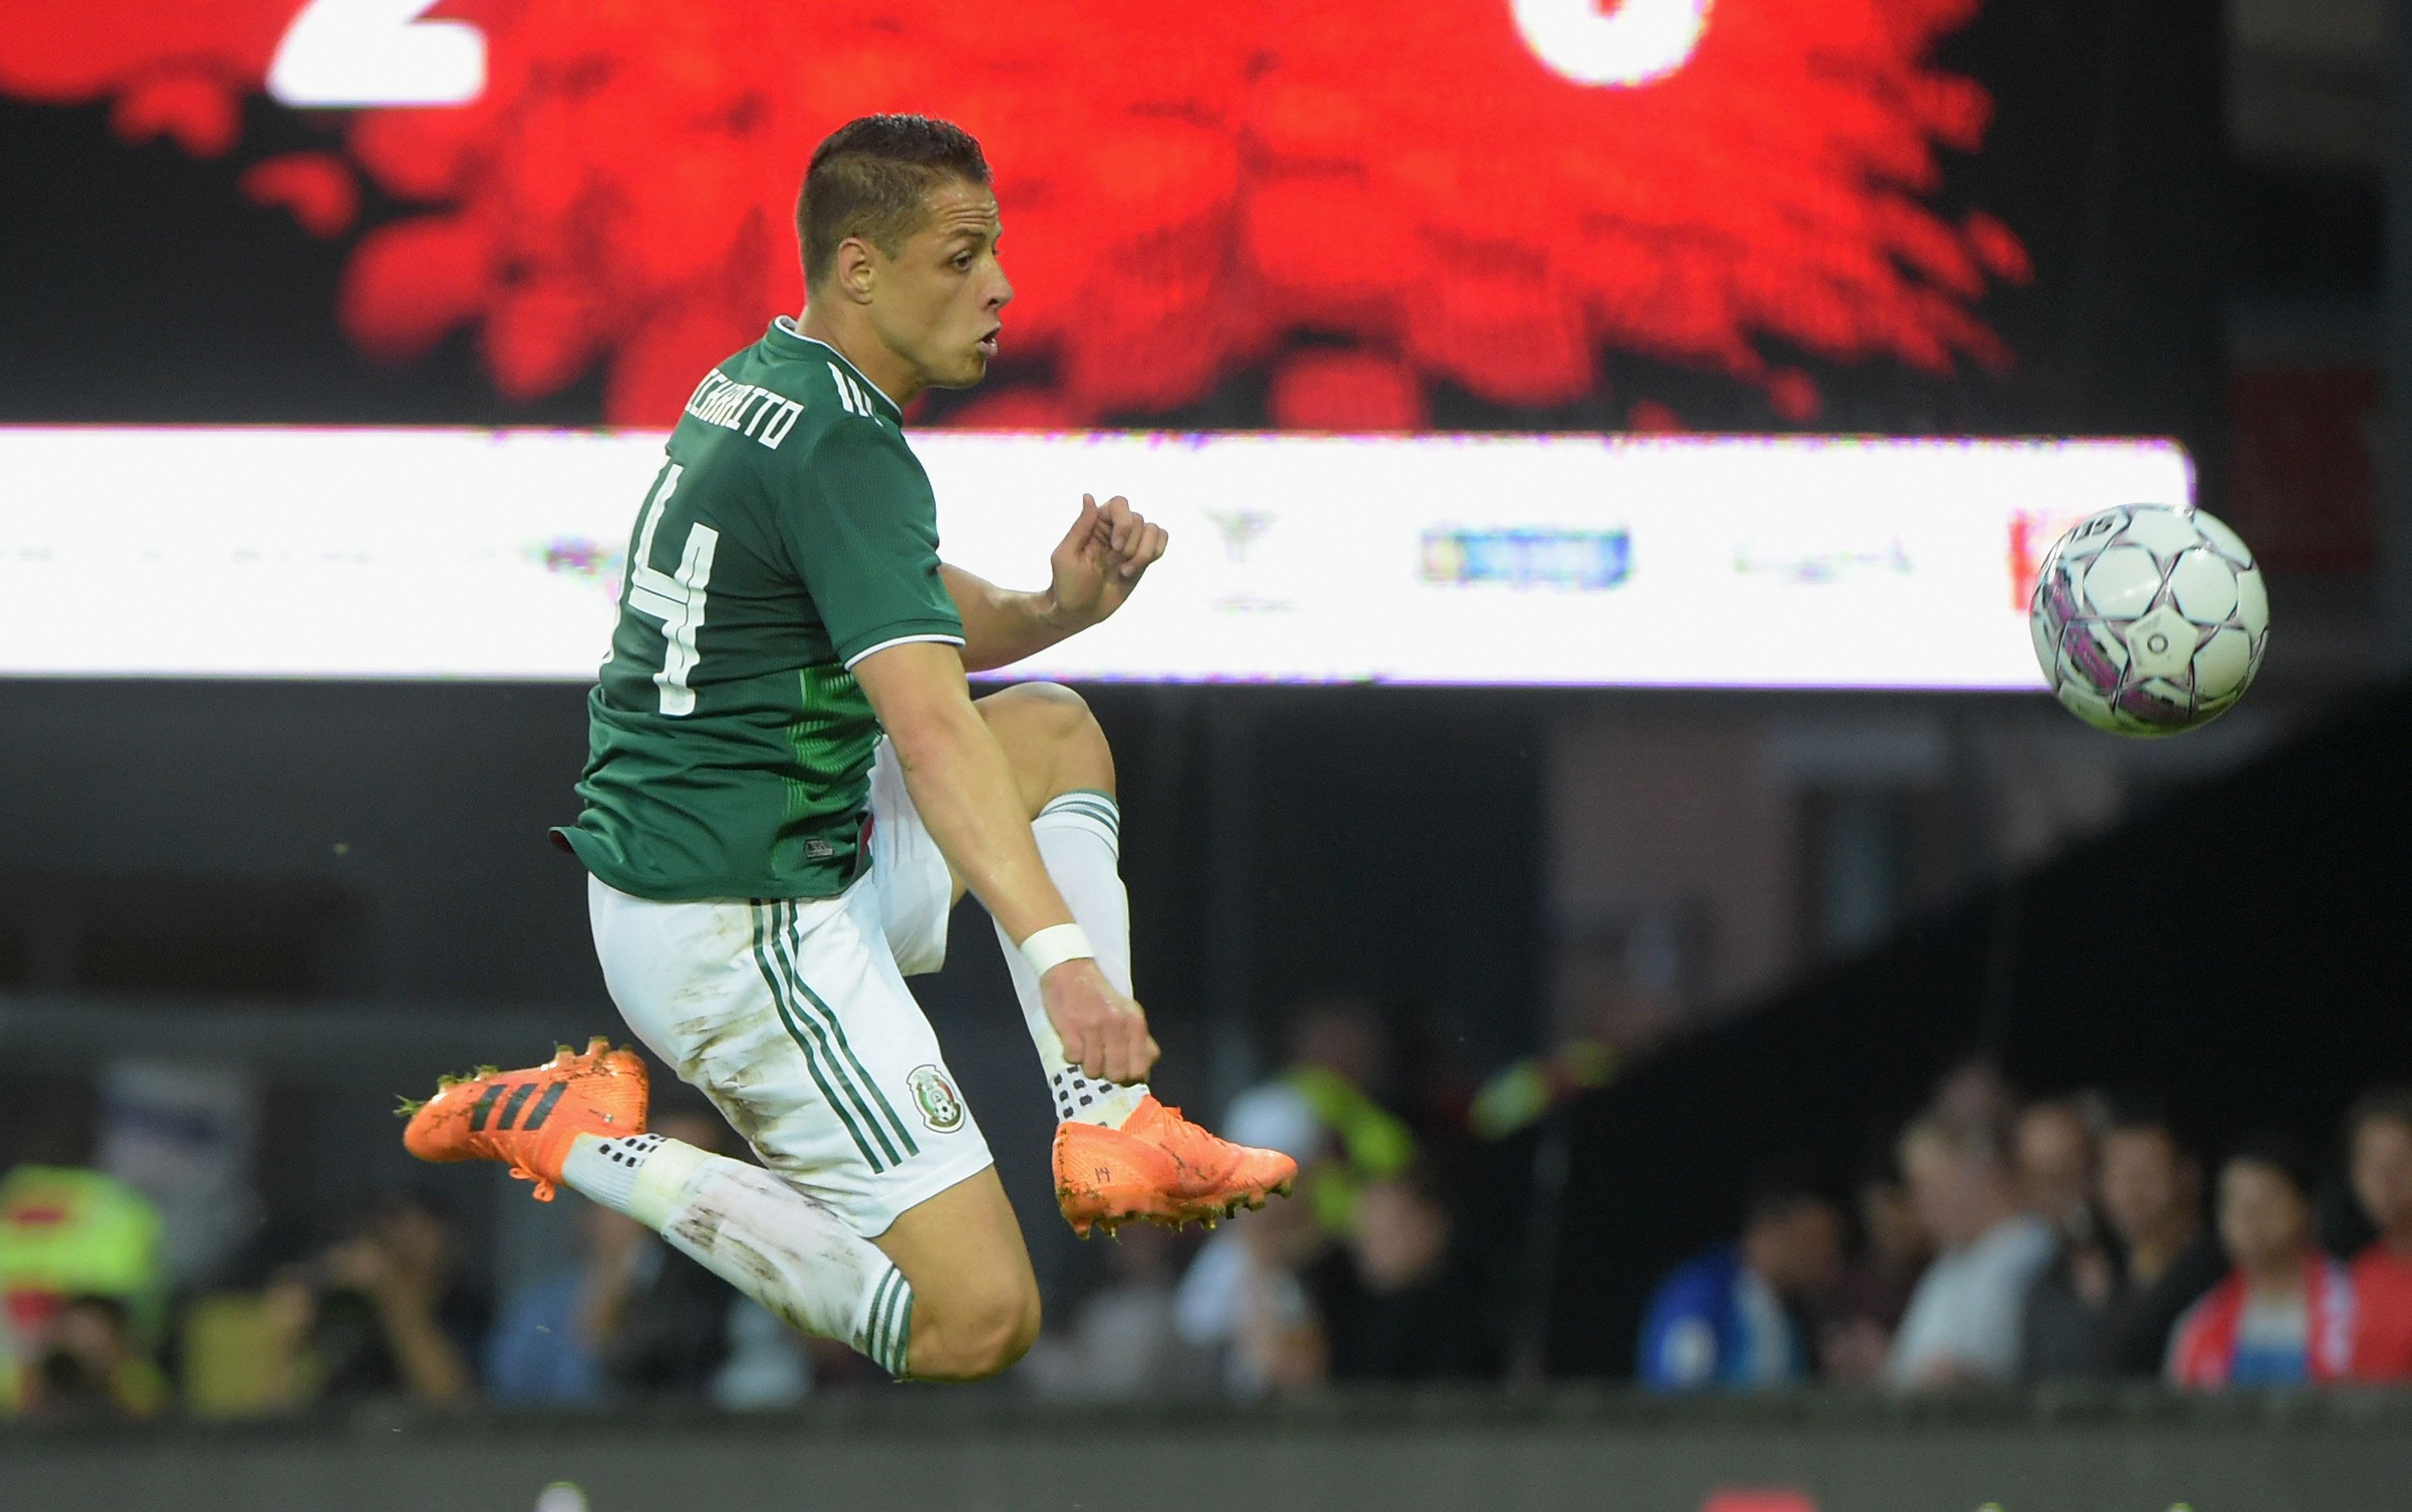 BRONDBY, DENMARK - JUNE 09:  Javier Hernandez of Mexico kicks the ball in the air during International Friendly match between Denmark v Mexico at Brondby Stadion on June 9, 2018 in Brondby, Denmark.  (Photo by Pier Marco Tacca/Getty Images)